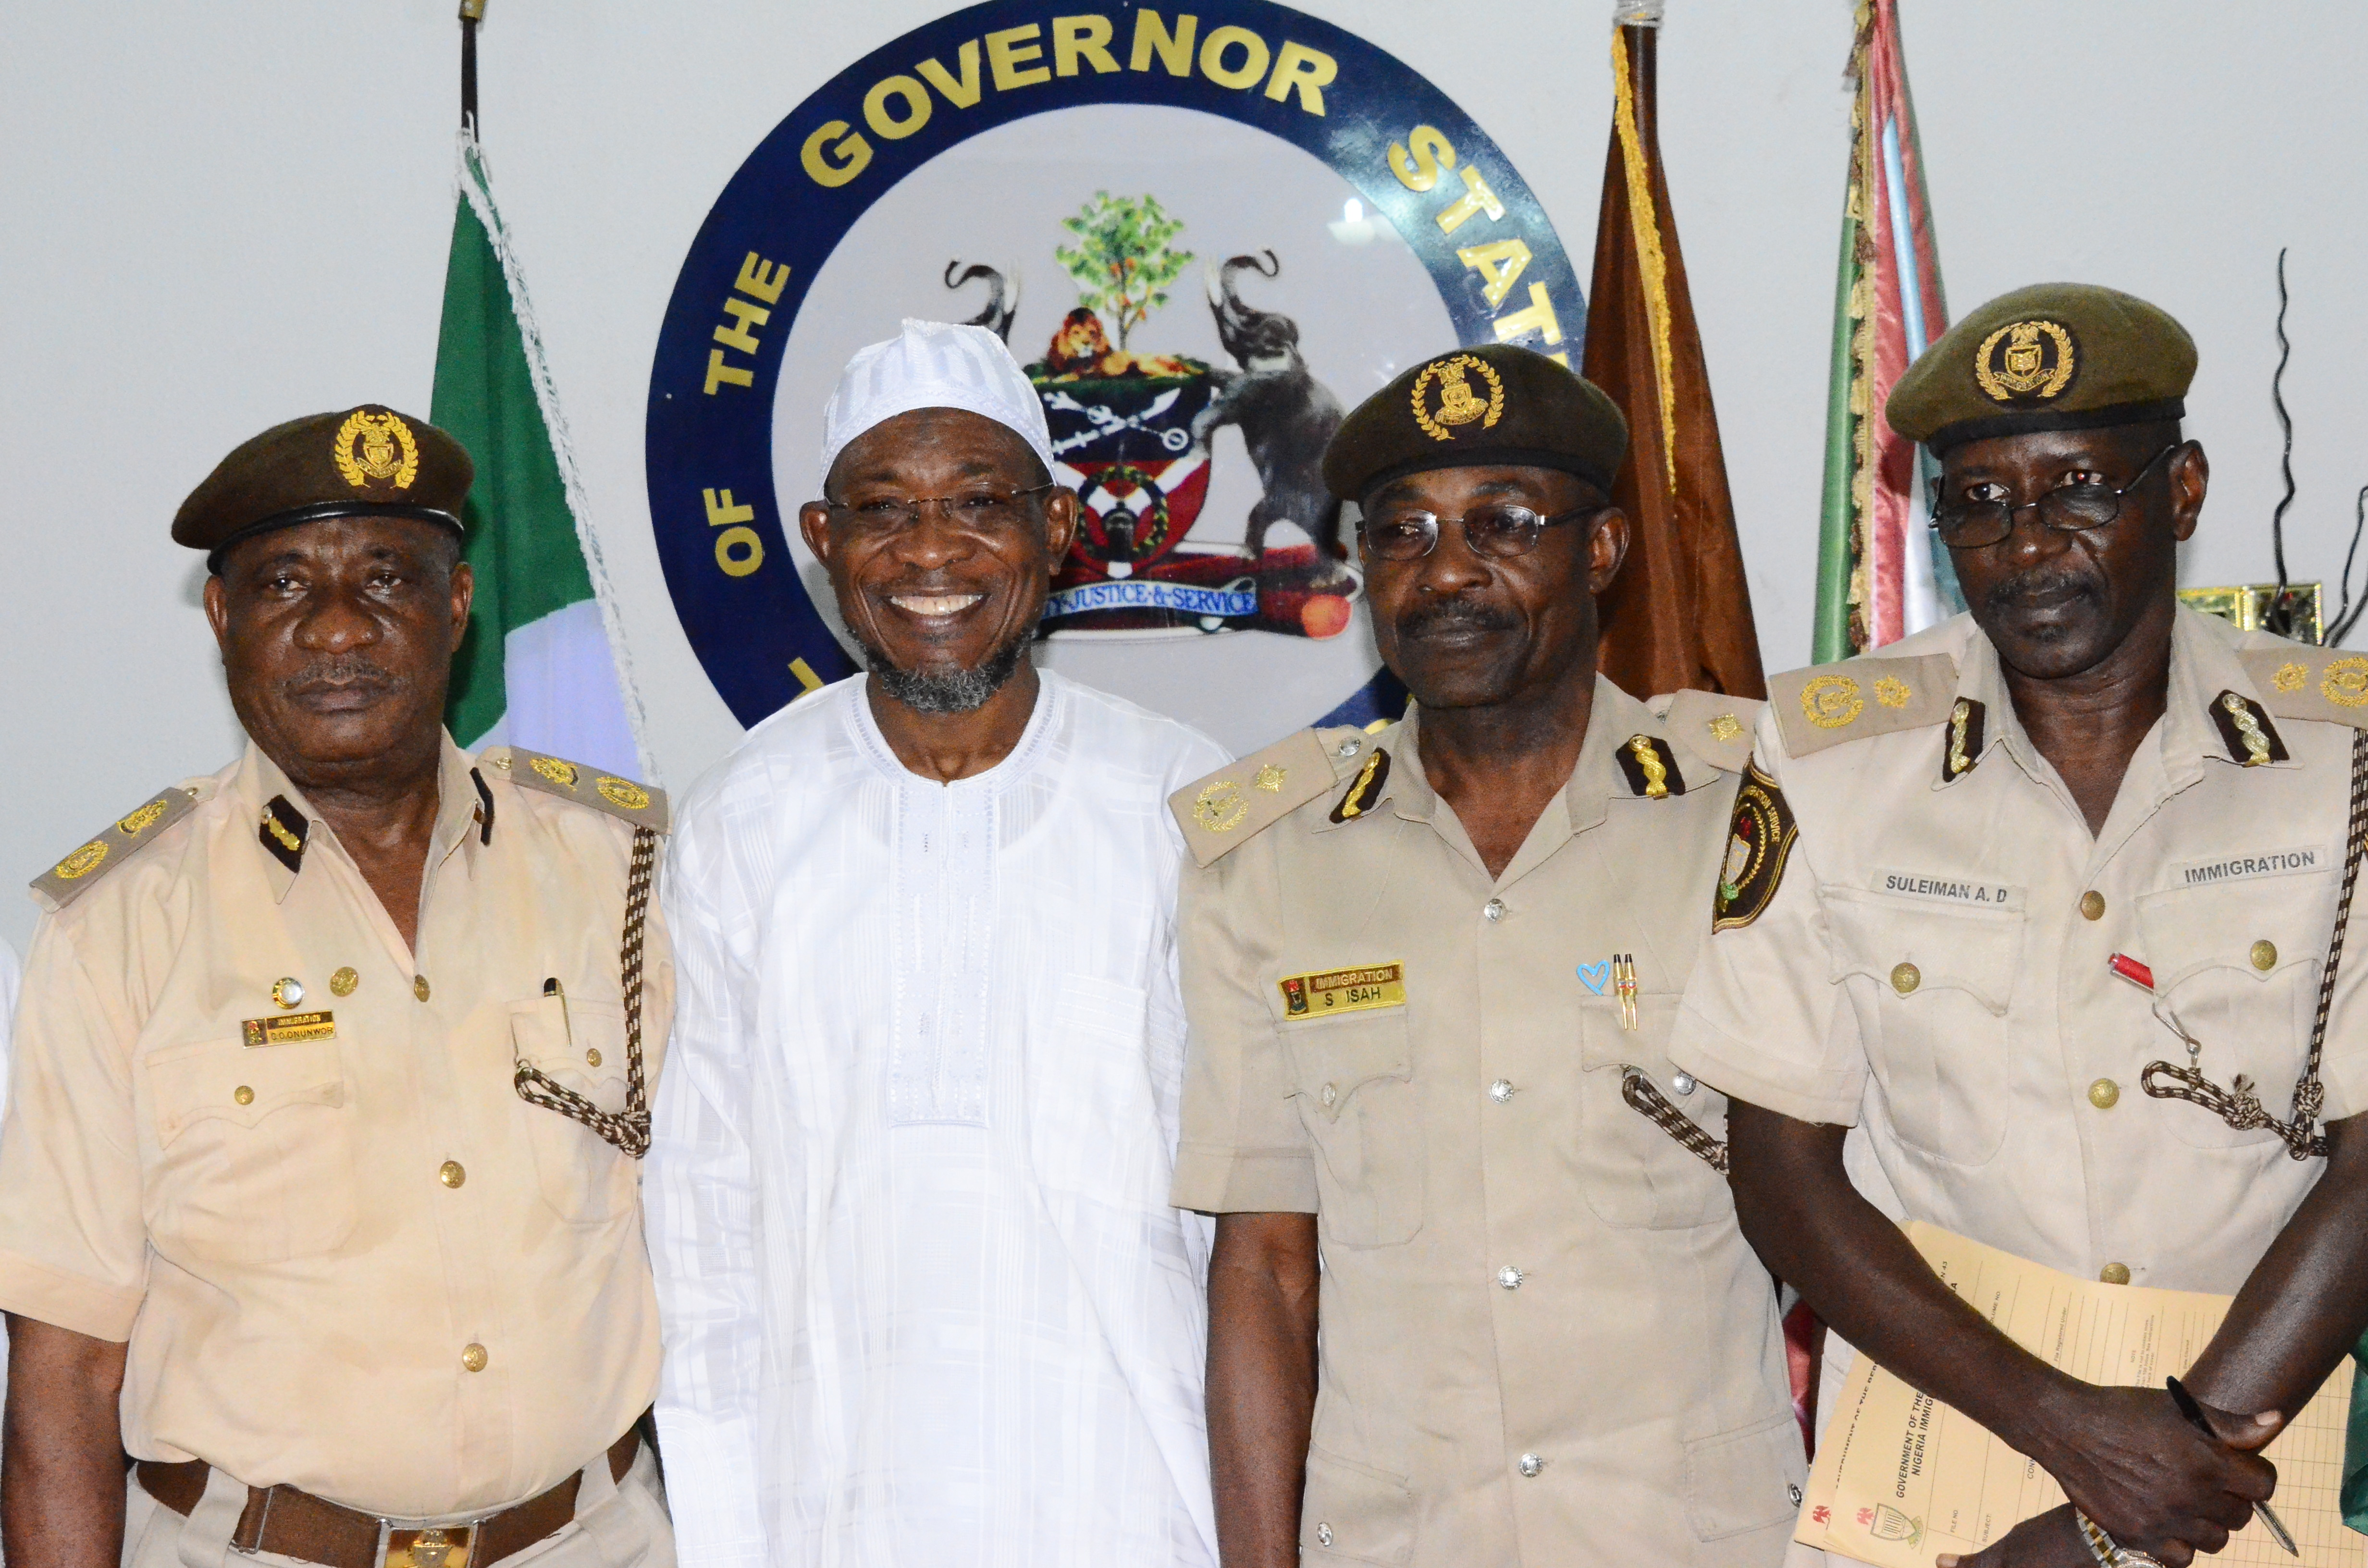 Governor State of Osun, Ogbeni Rauf Aregbesola (2nd left); Osun State Comptroller of Immigration, Mr. Onunwor Chris (left); Passport Control Officer of Immigration, Mr. Isah Salihu (2nd right); Deputy Comptroller of Immigration,  Mr. Aminu Suliman (right), during a Courtesy Visit to the Governor, at Government House, Osogbo on Thursday 19/02/2015.